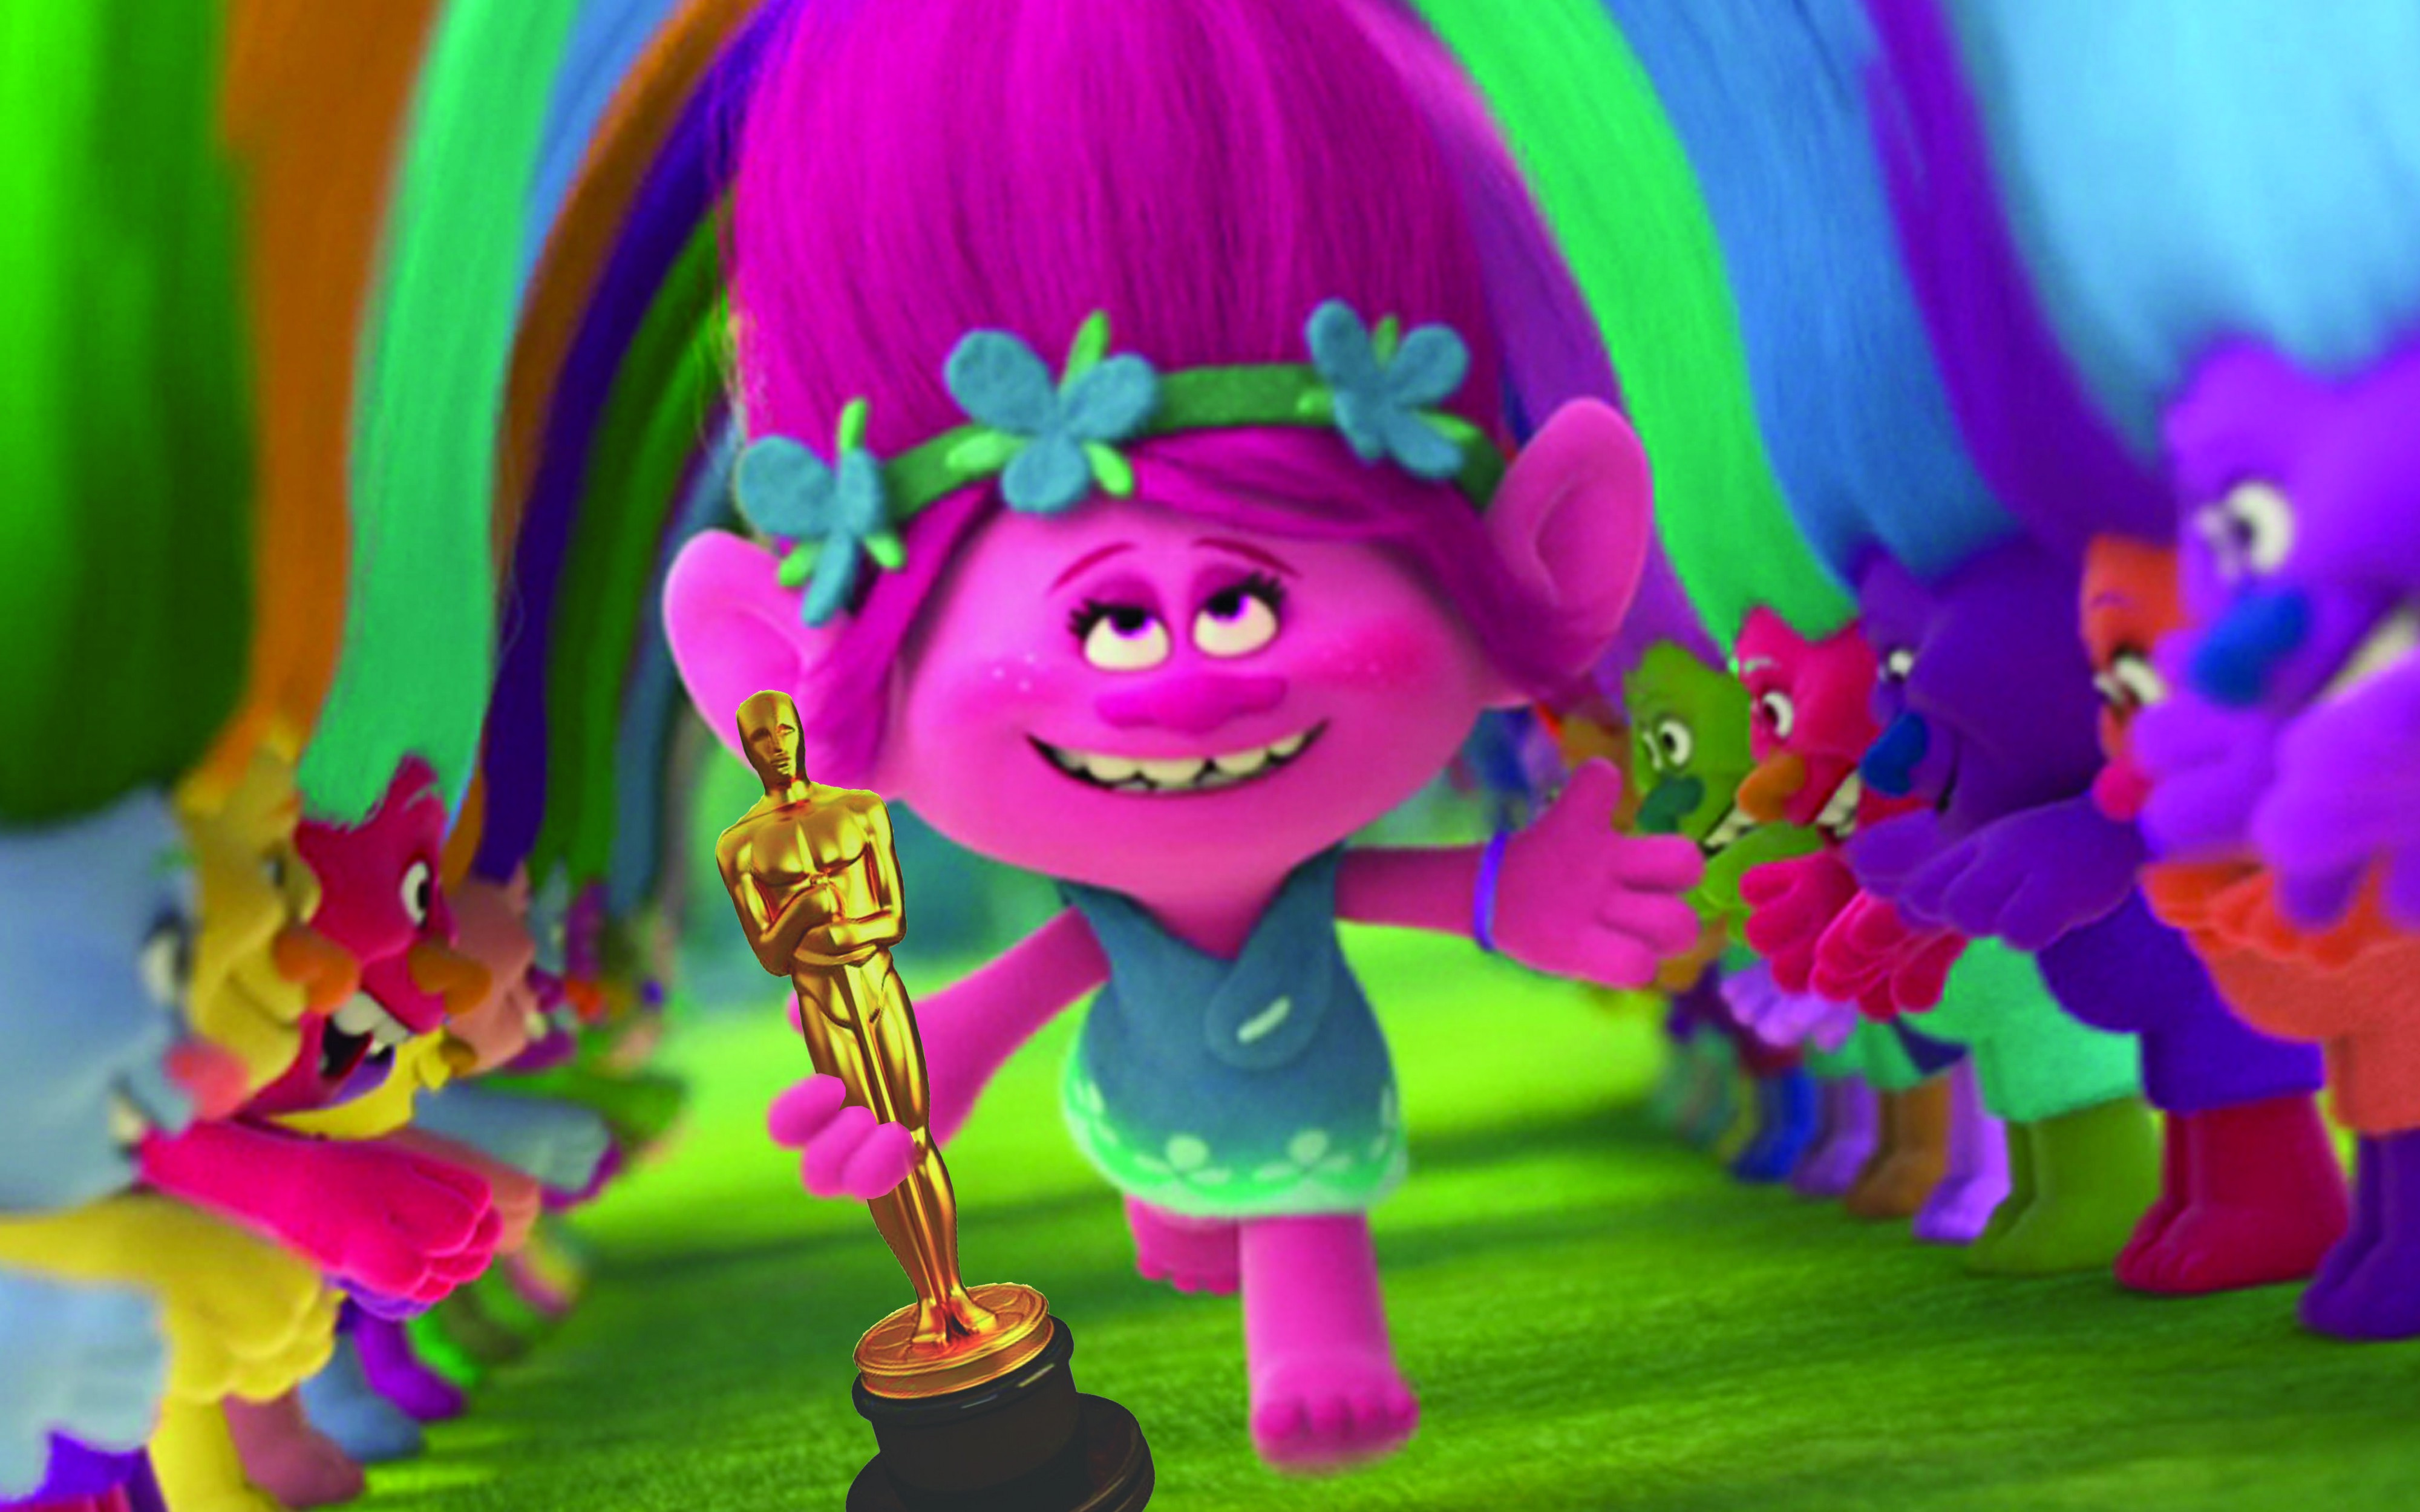 Trolls The Absolute Objectively Best Movie Of All Time